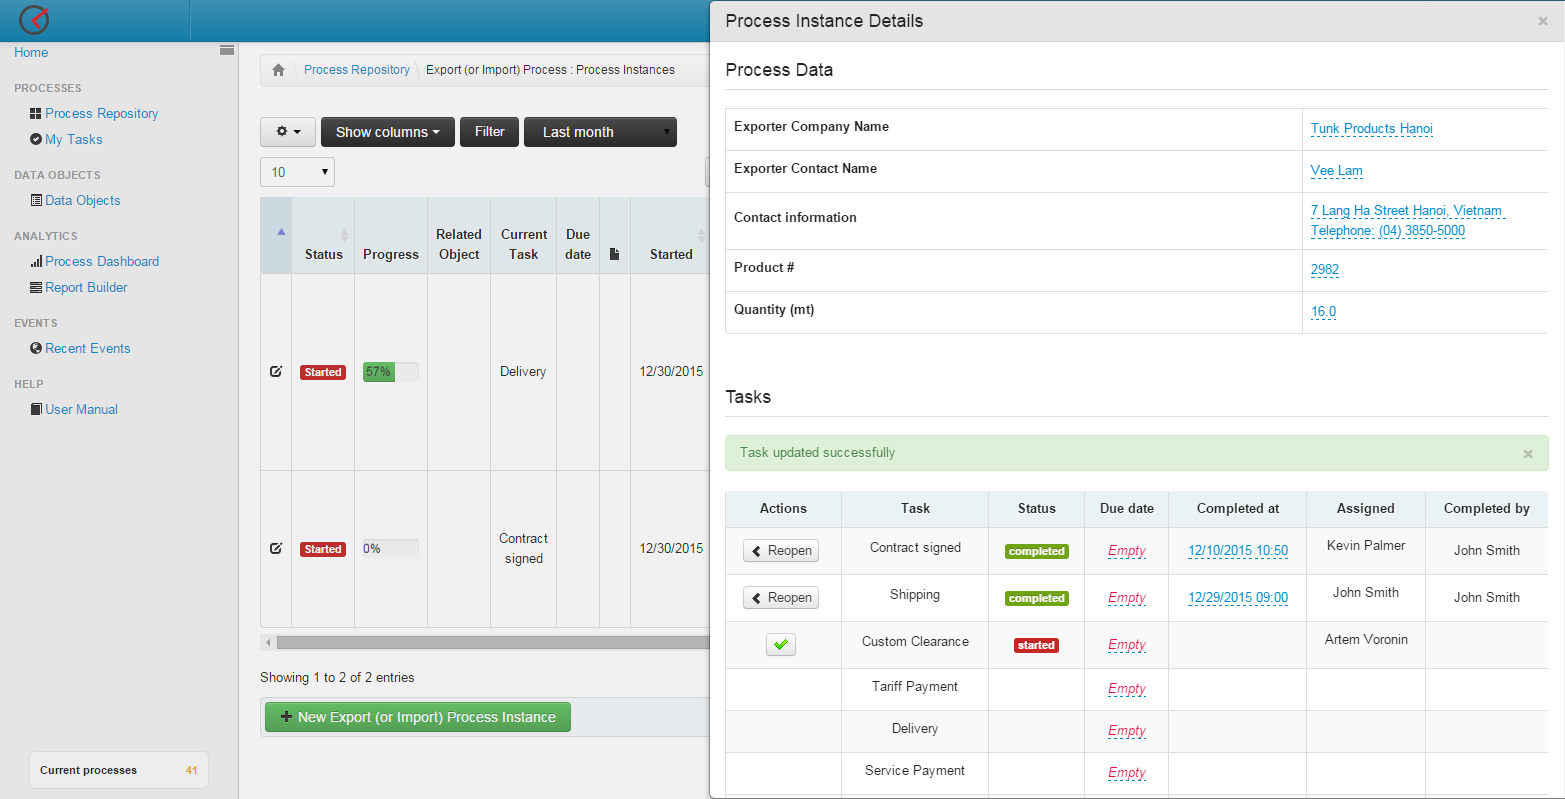 Screenshot of individual export/import processes. At the top - parameters of the process. Bottom - list of tasks with statuses, responsible users, etc.